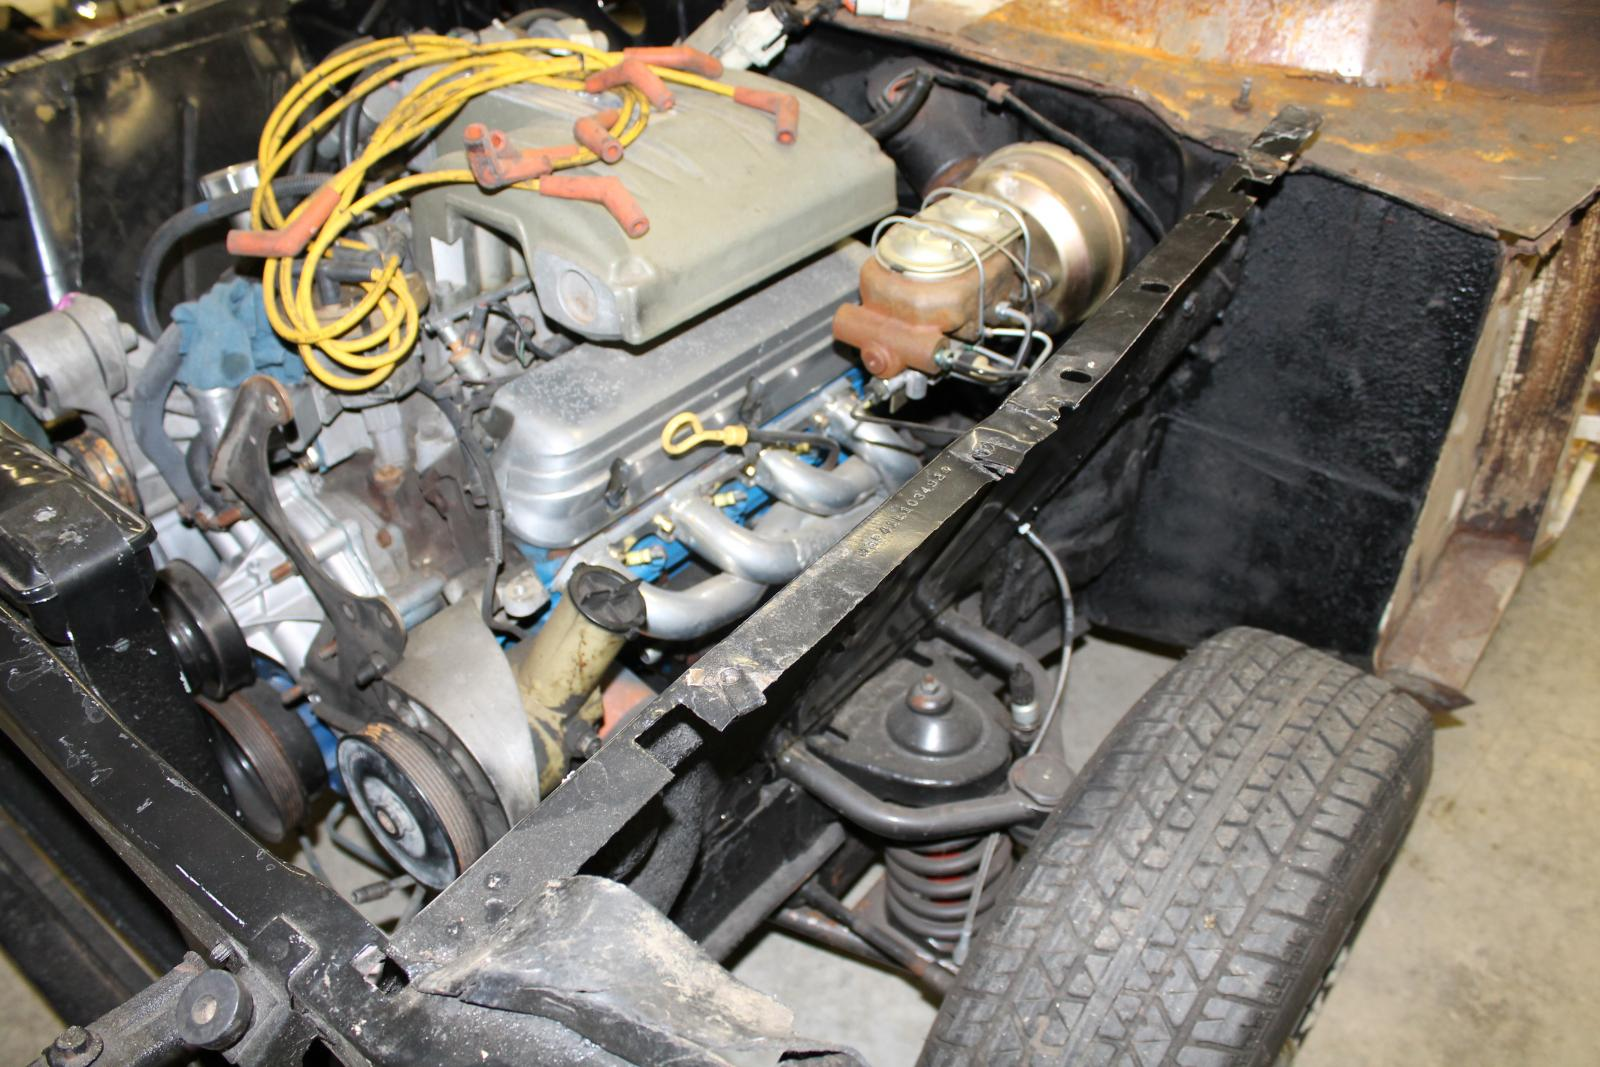 wiring a 1990 fuel injected 5 0 into a 63 ford fairlane ford bronco wiring harness ford bronco wiring harness ford bronco wiring harness ford bronco wiring harness